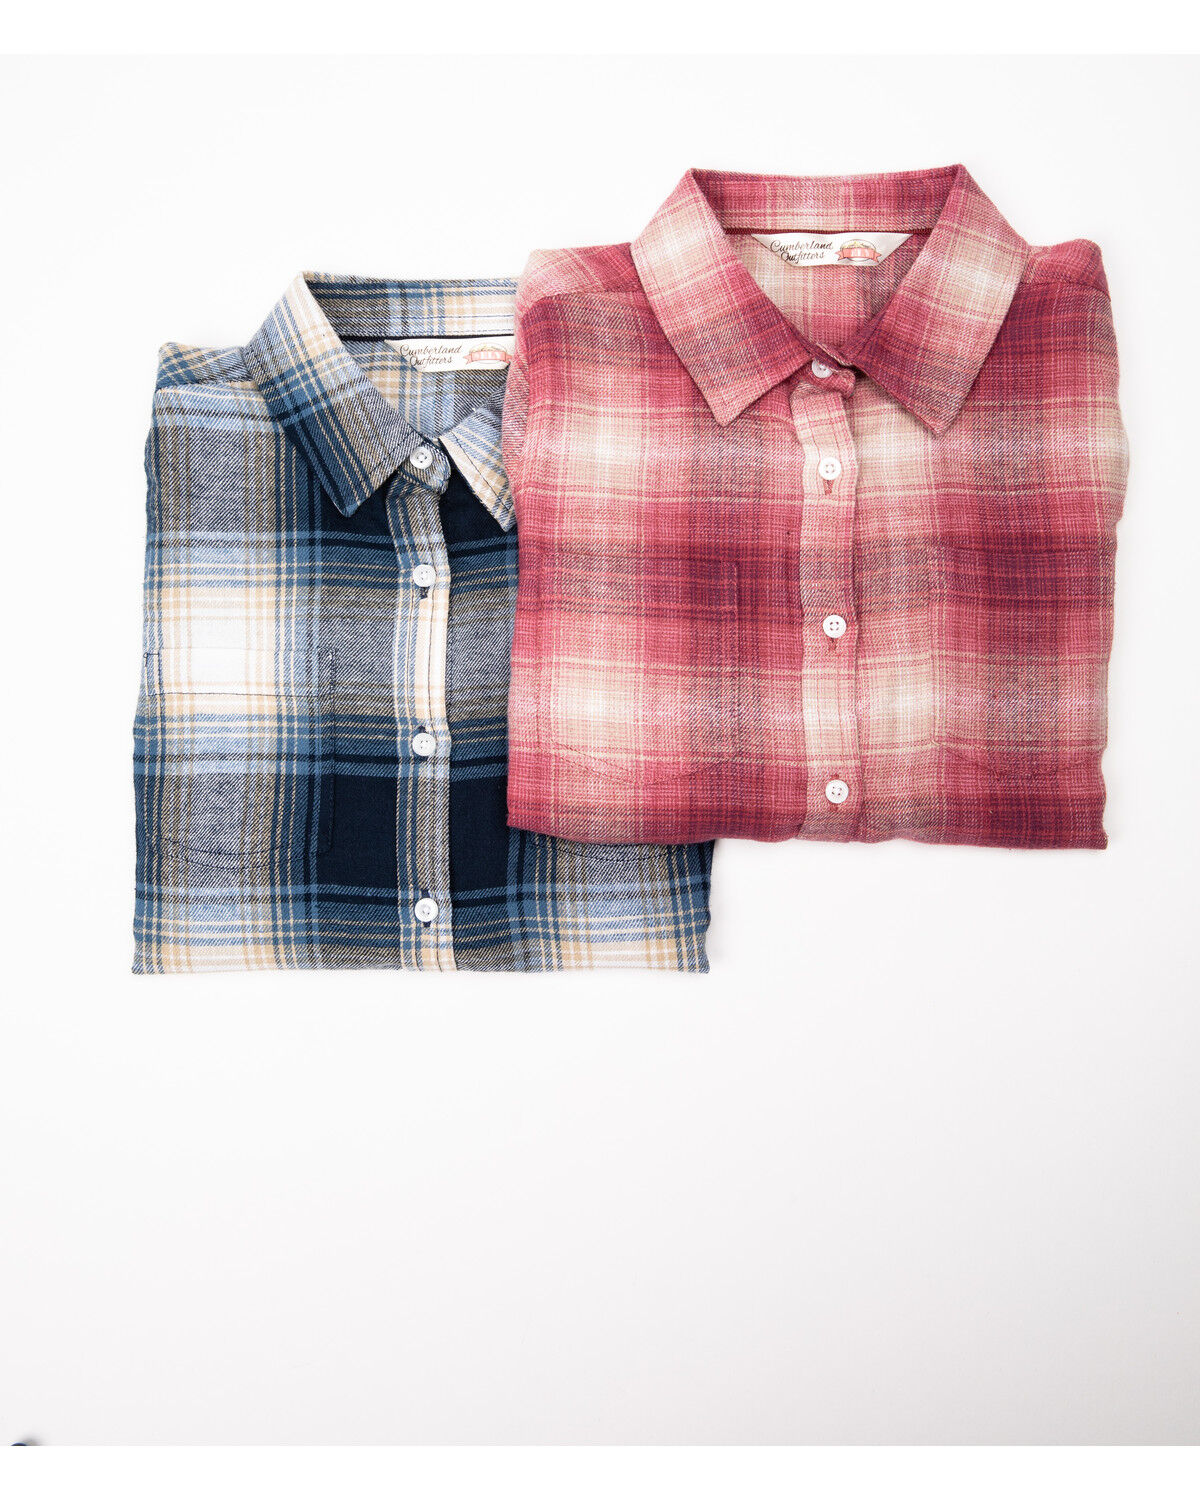 Big Girls Sleeveless Woven Plaid Button Down Shirts with Collar Red Black Navy Color